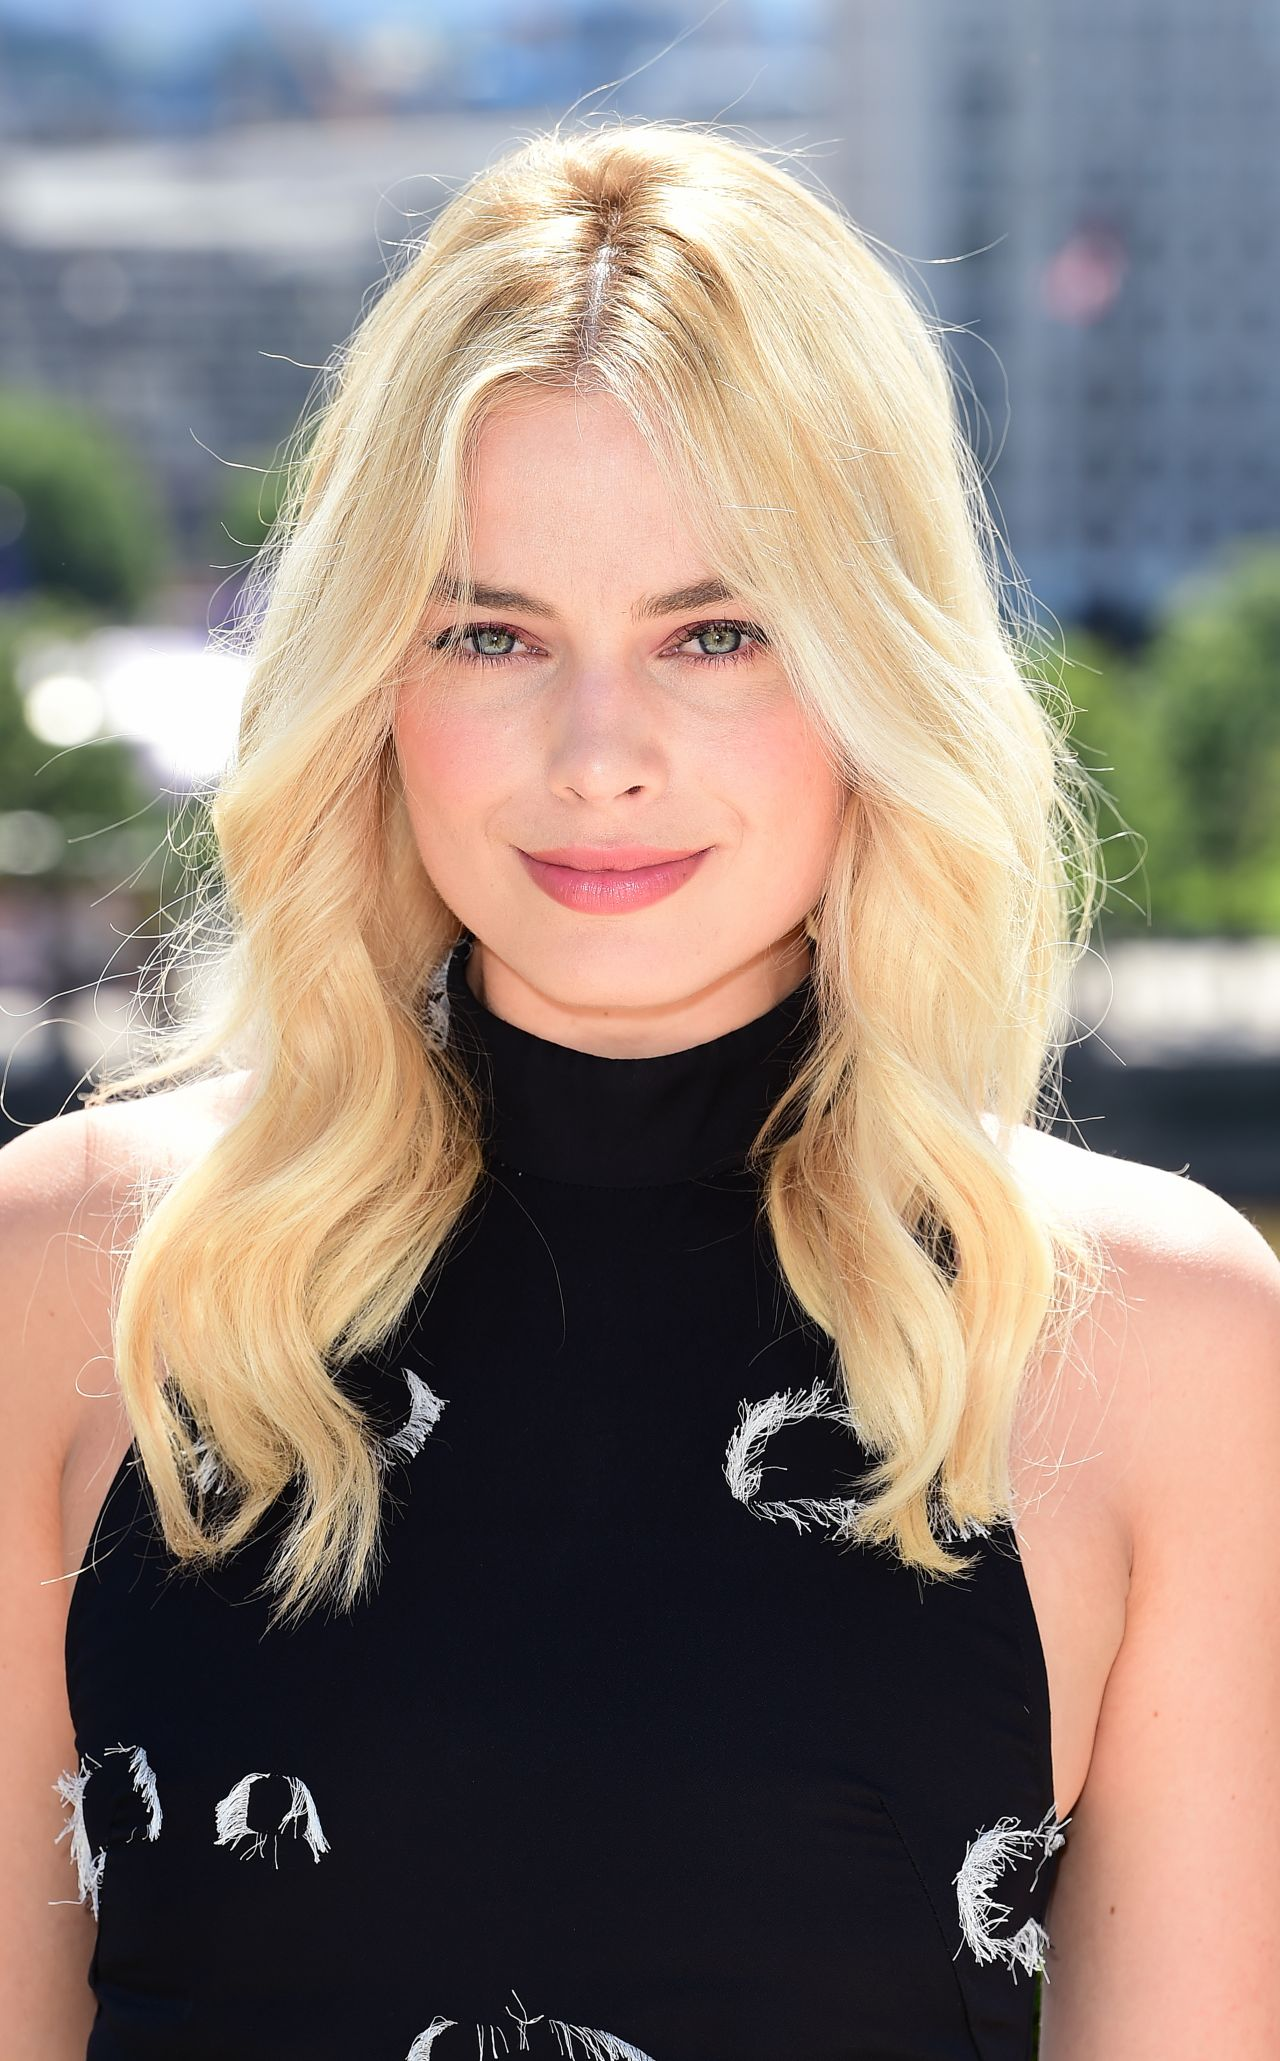 margot robbie - photo #49